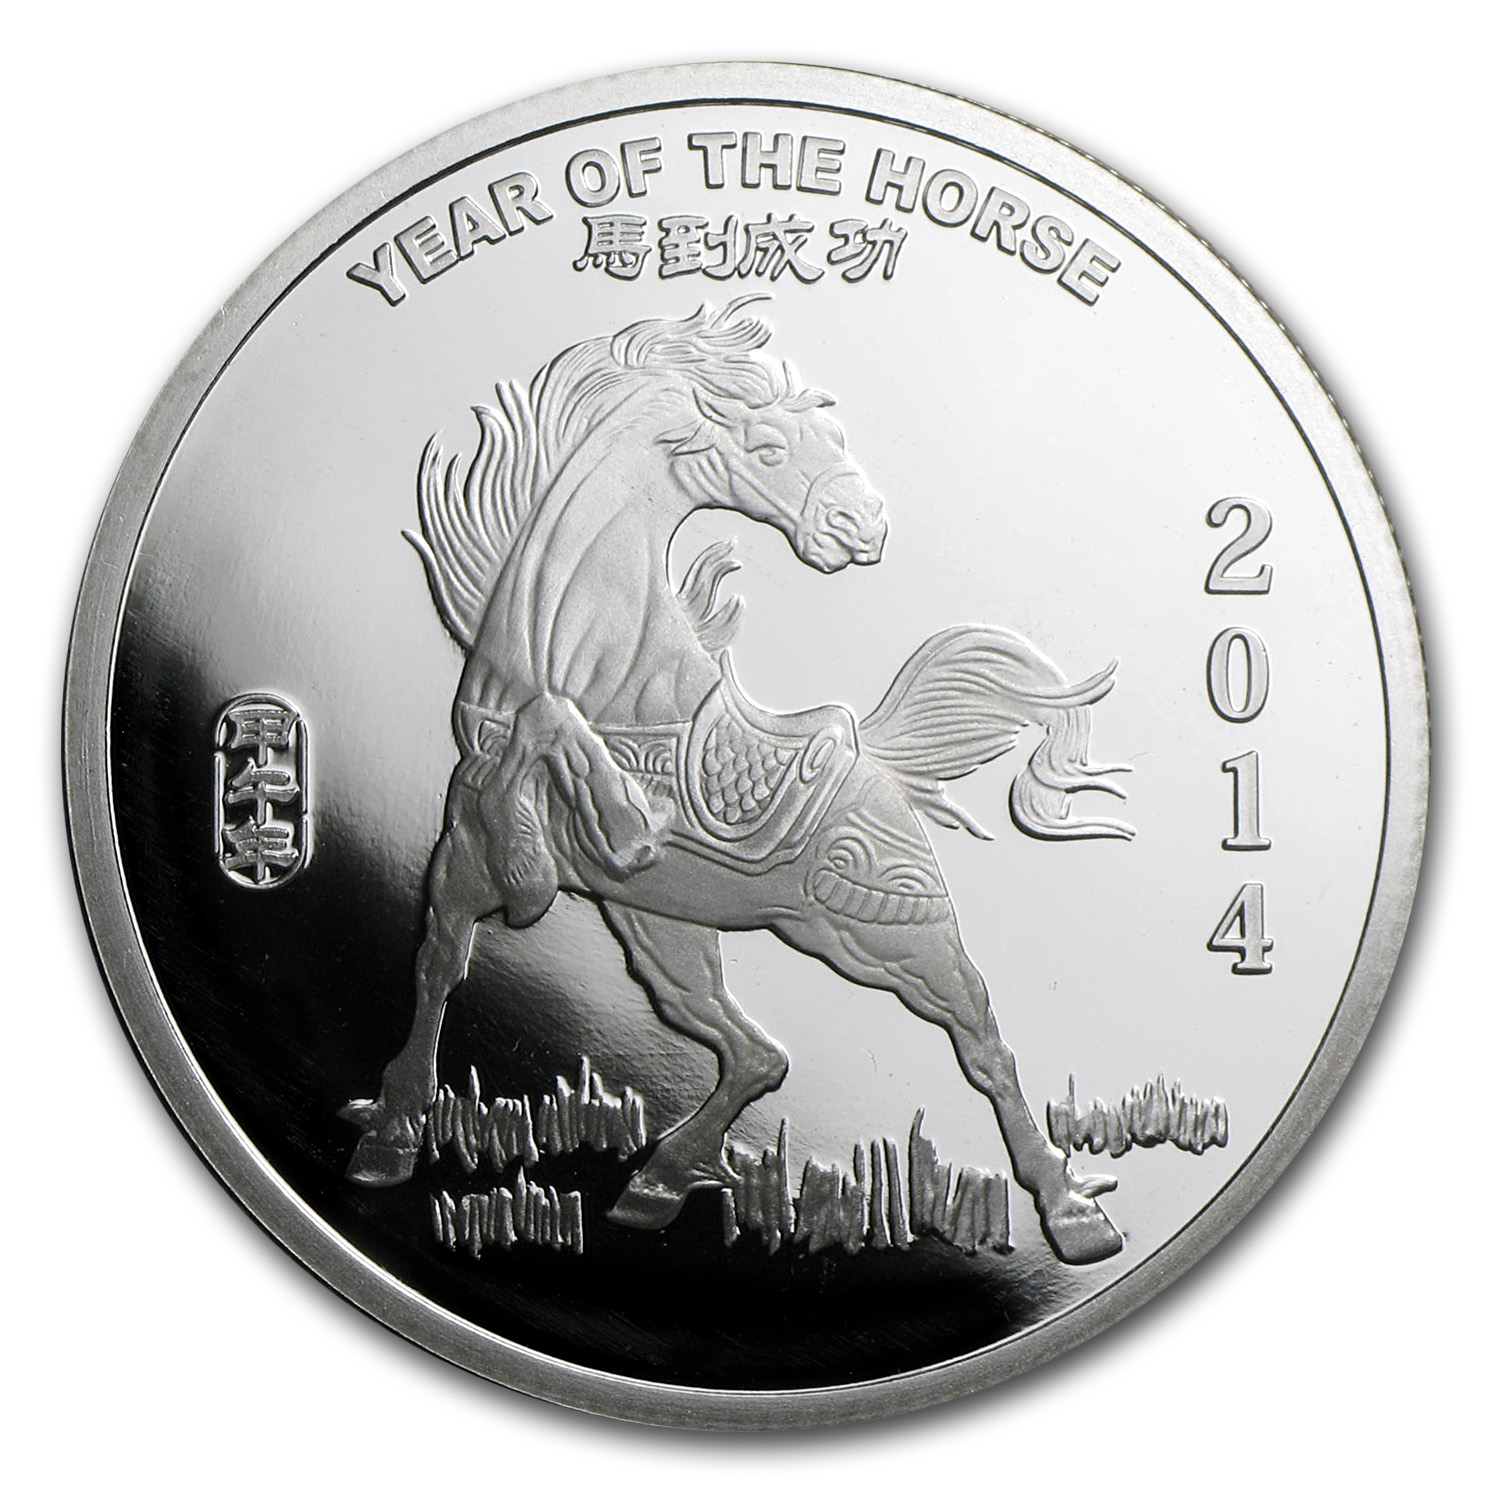 1 oz Silver Round - APMEX (2014 Year of the Horse)